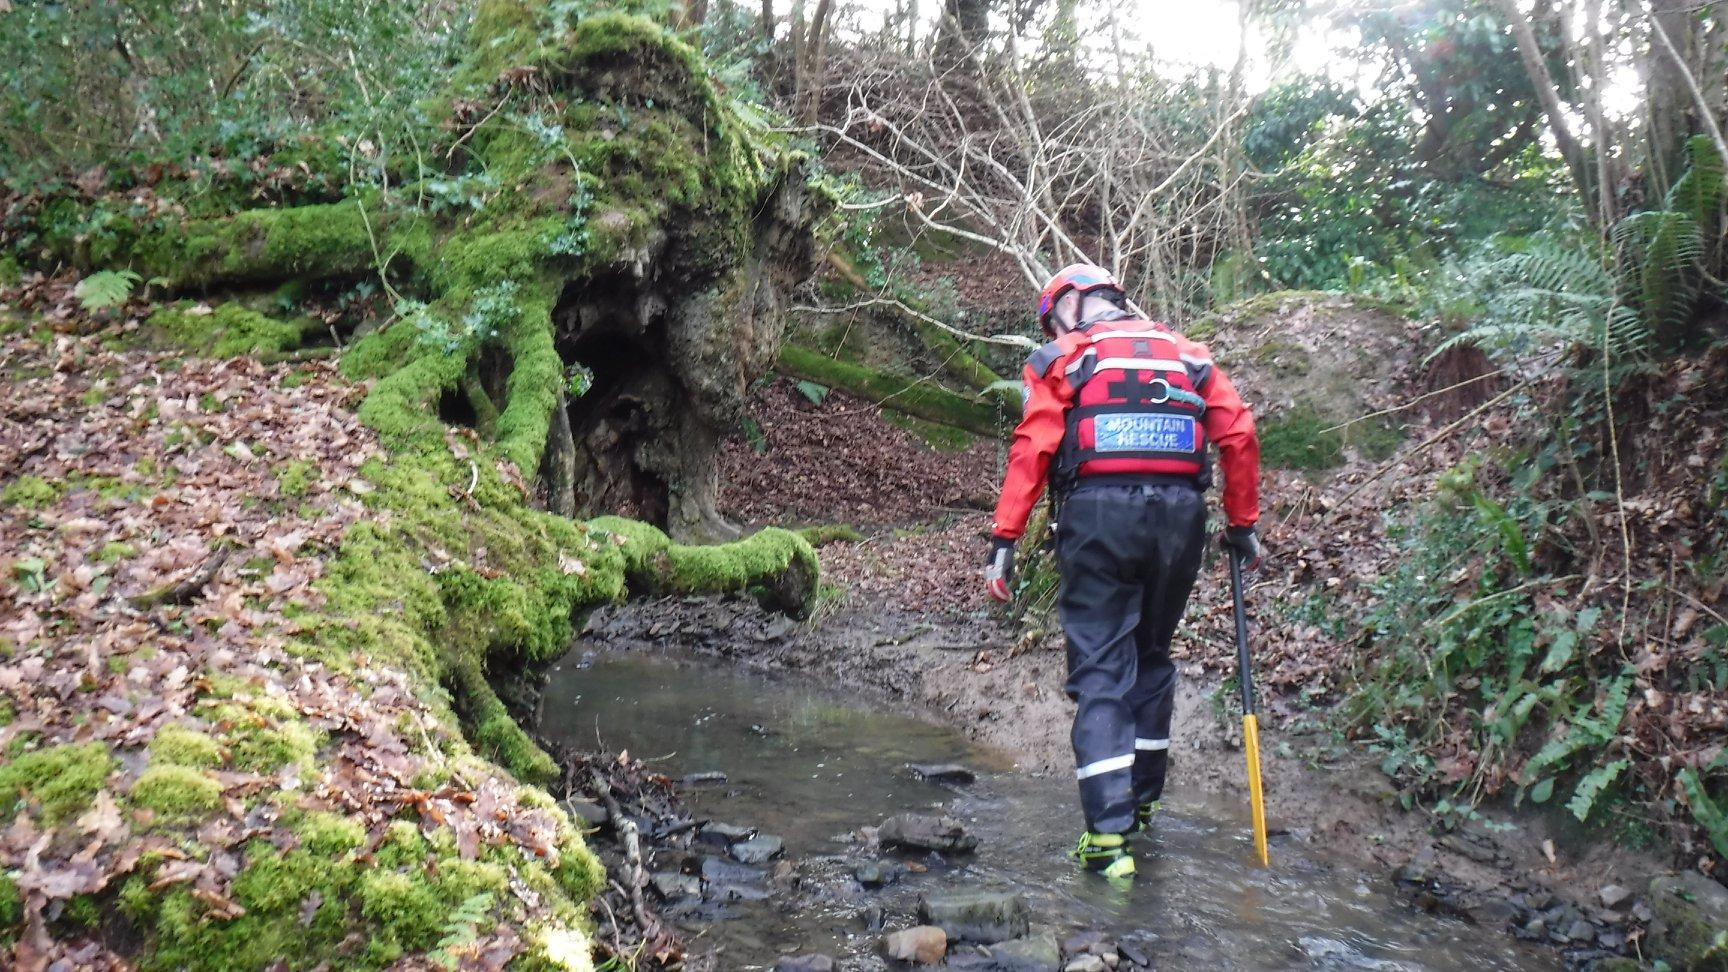 Ashburton swift water rescue specialists searching for a missing male outside Exeter